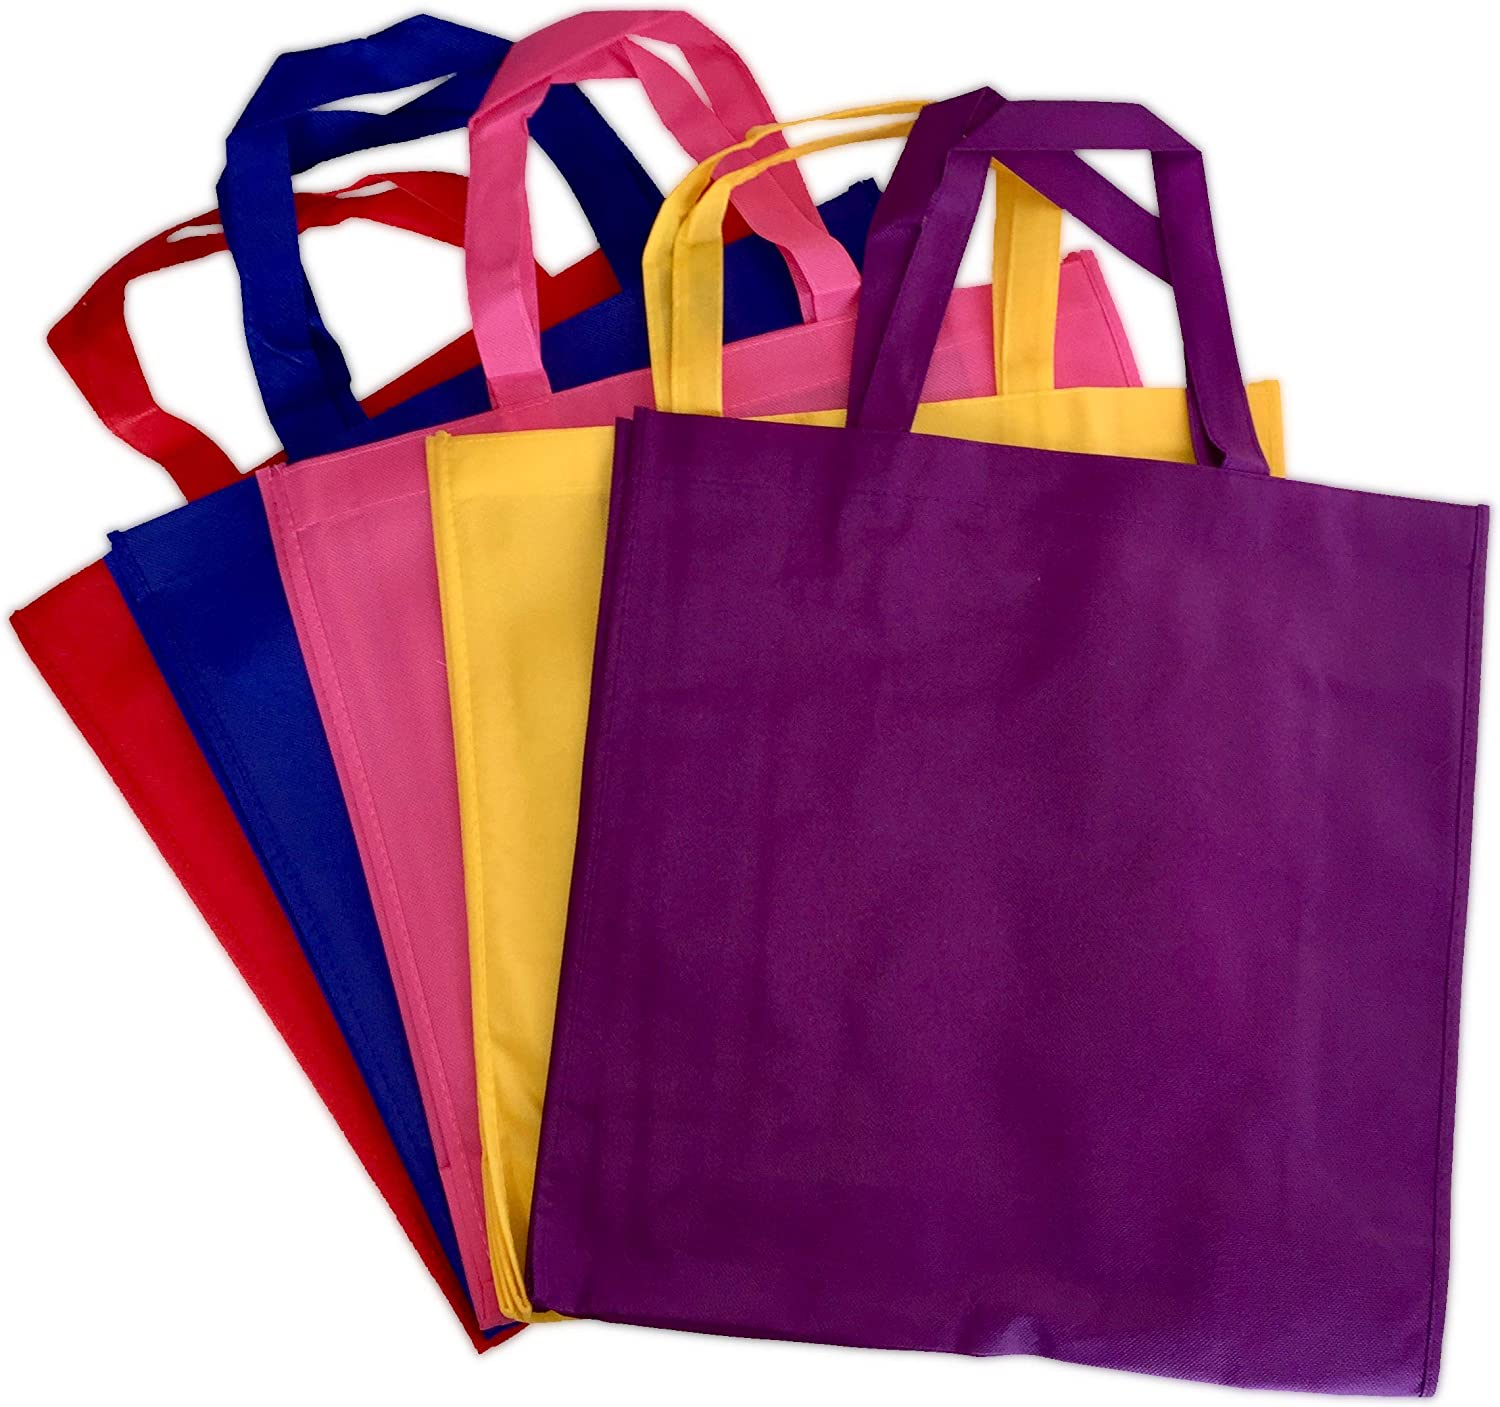 Variety 5 Pack Promo 5 ☆ popular Tote store Bags Totes Travel and Grocery Reusable